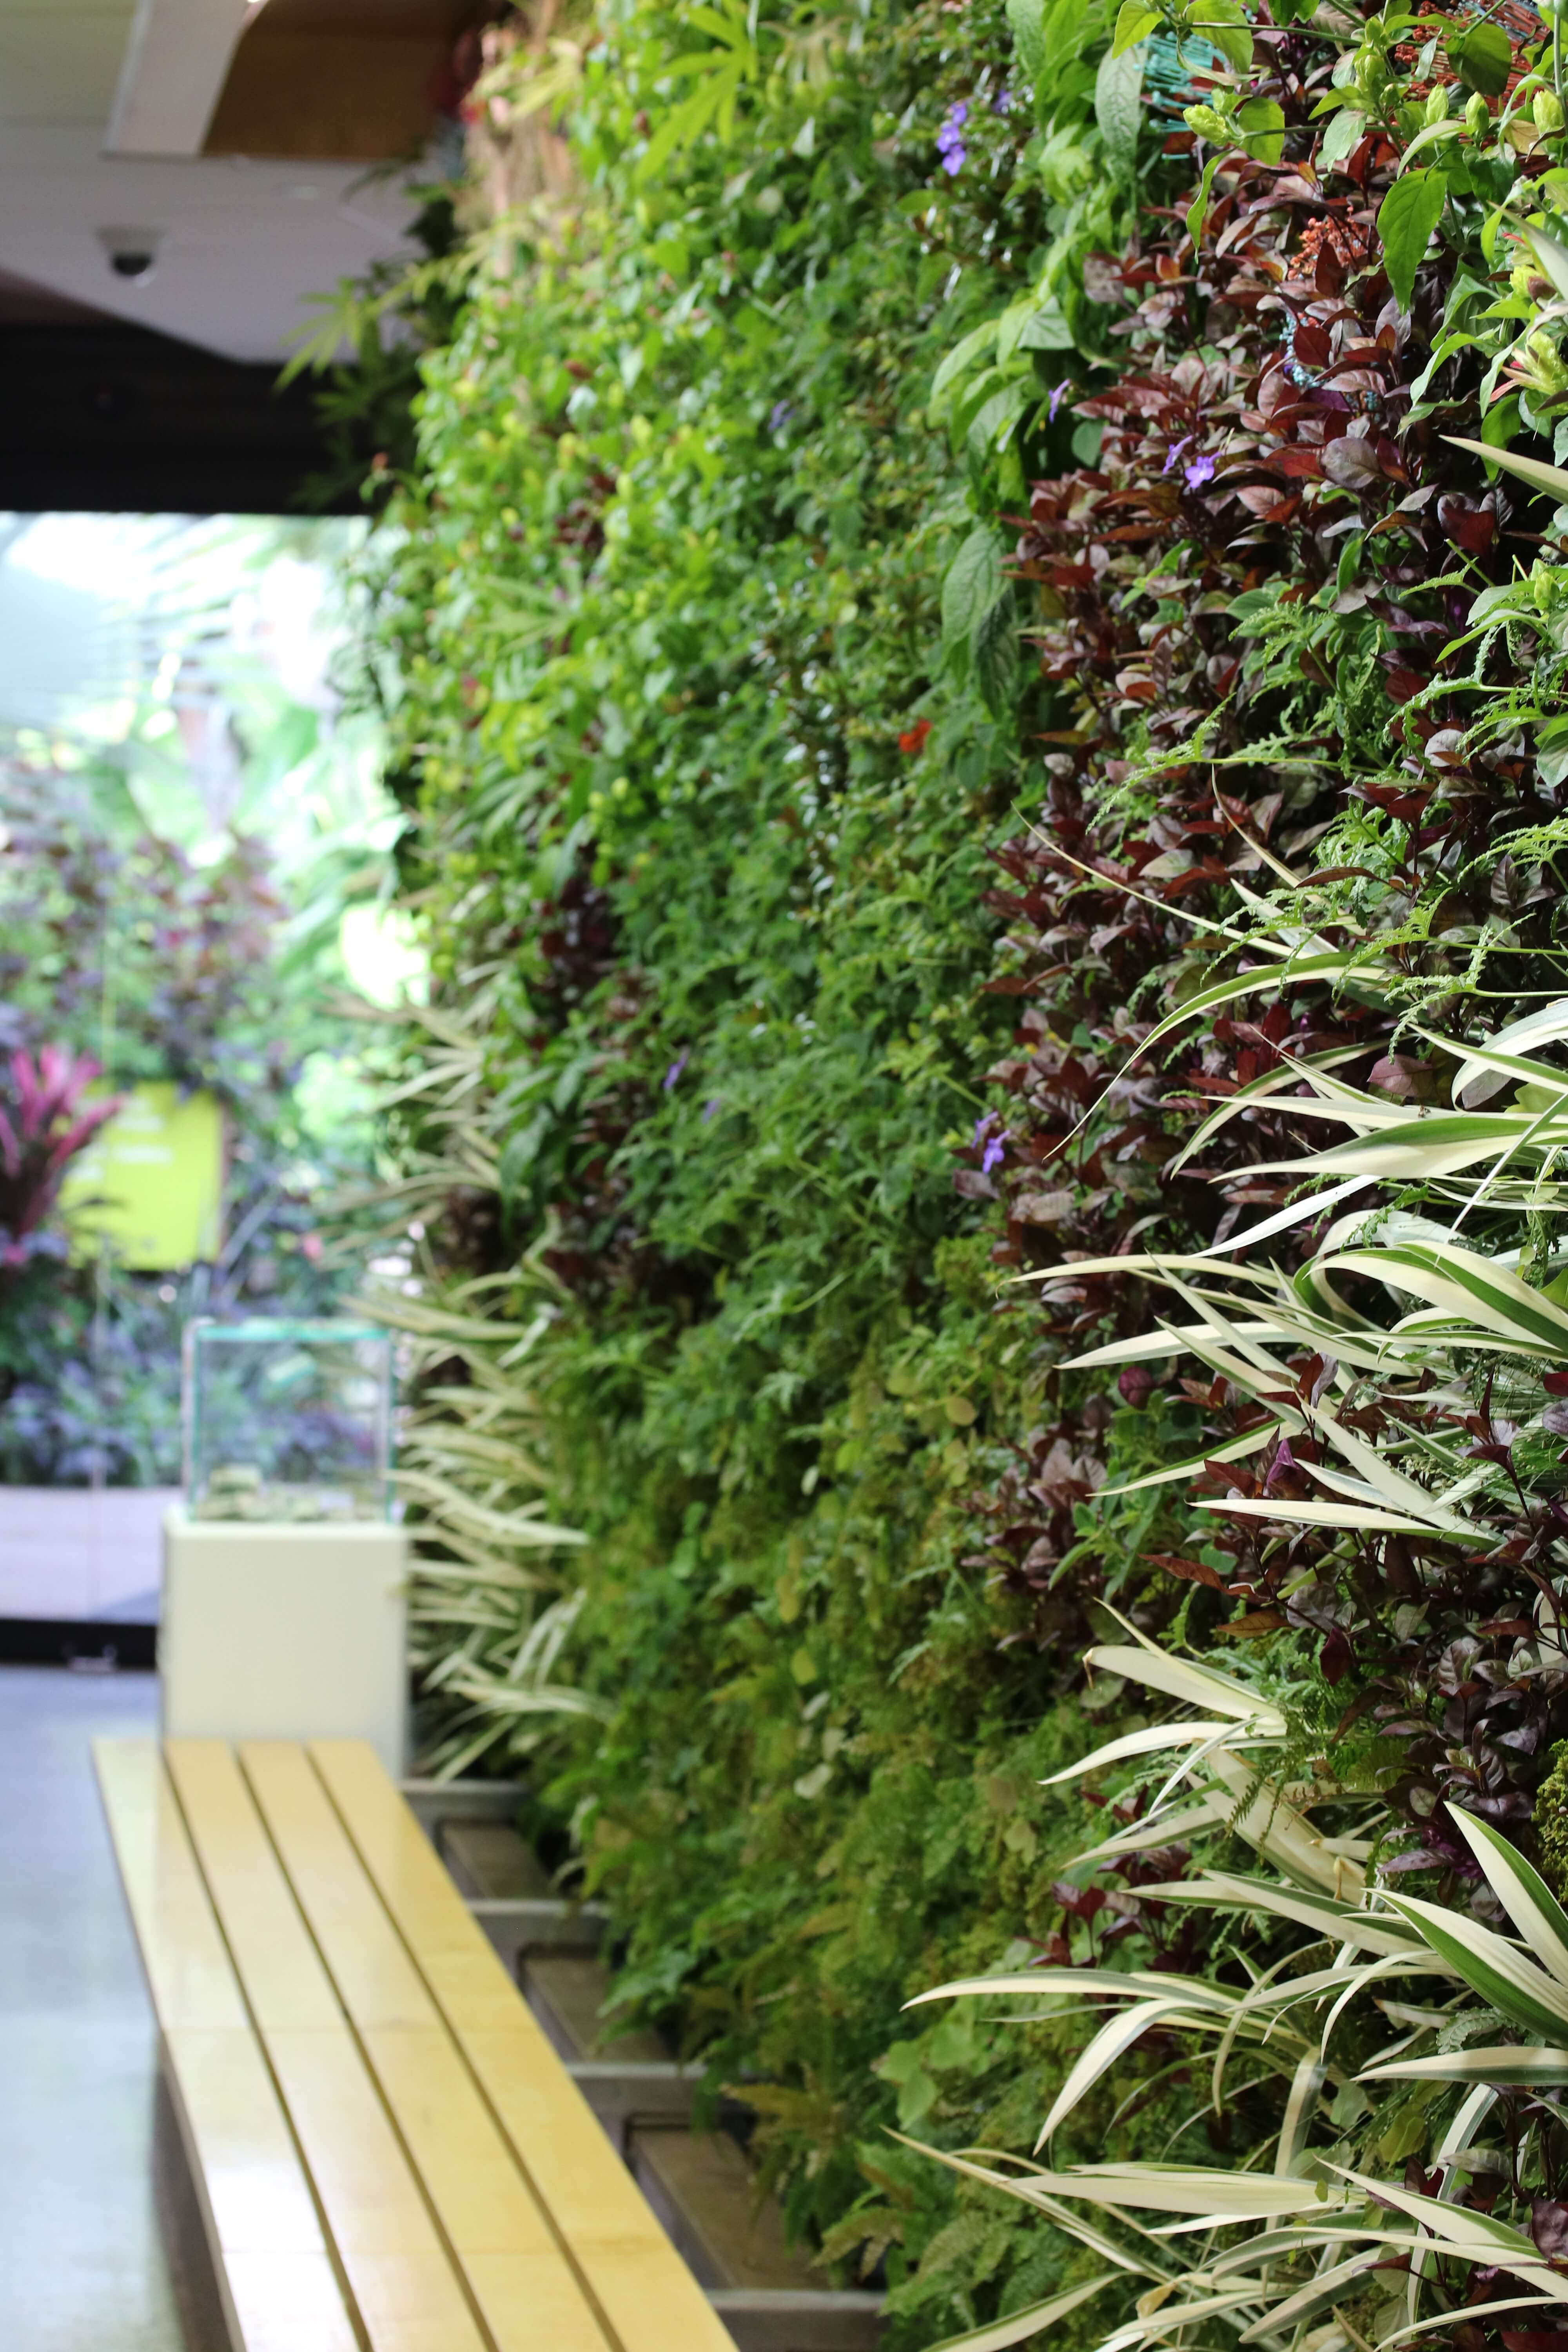 The Living Wall plants were all changed out on Oct. 2 with a fresh new design. Photo by Hannah Loy.